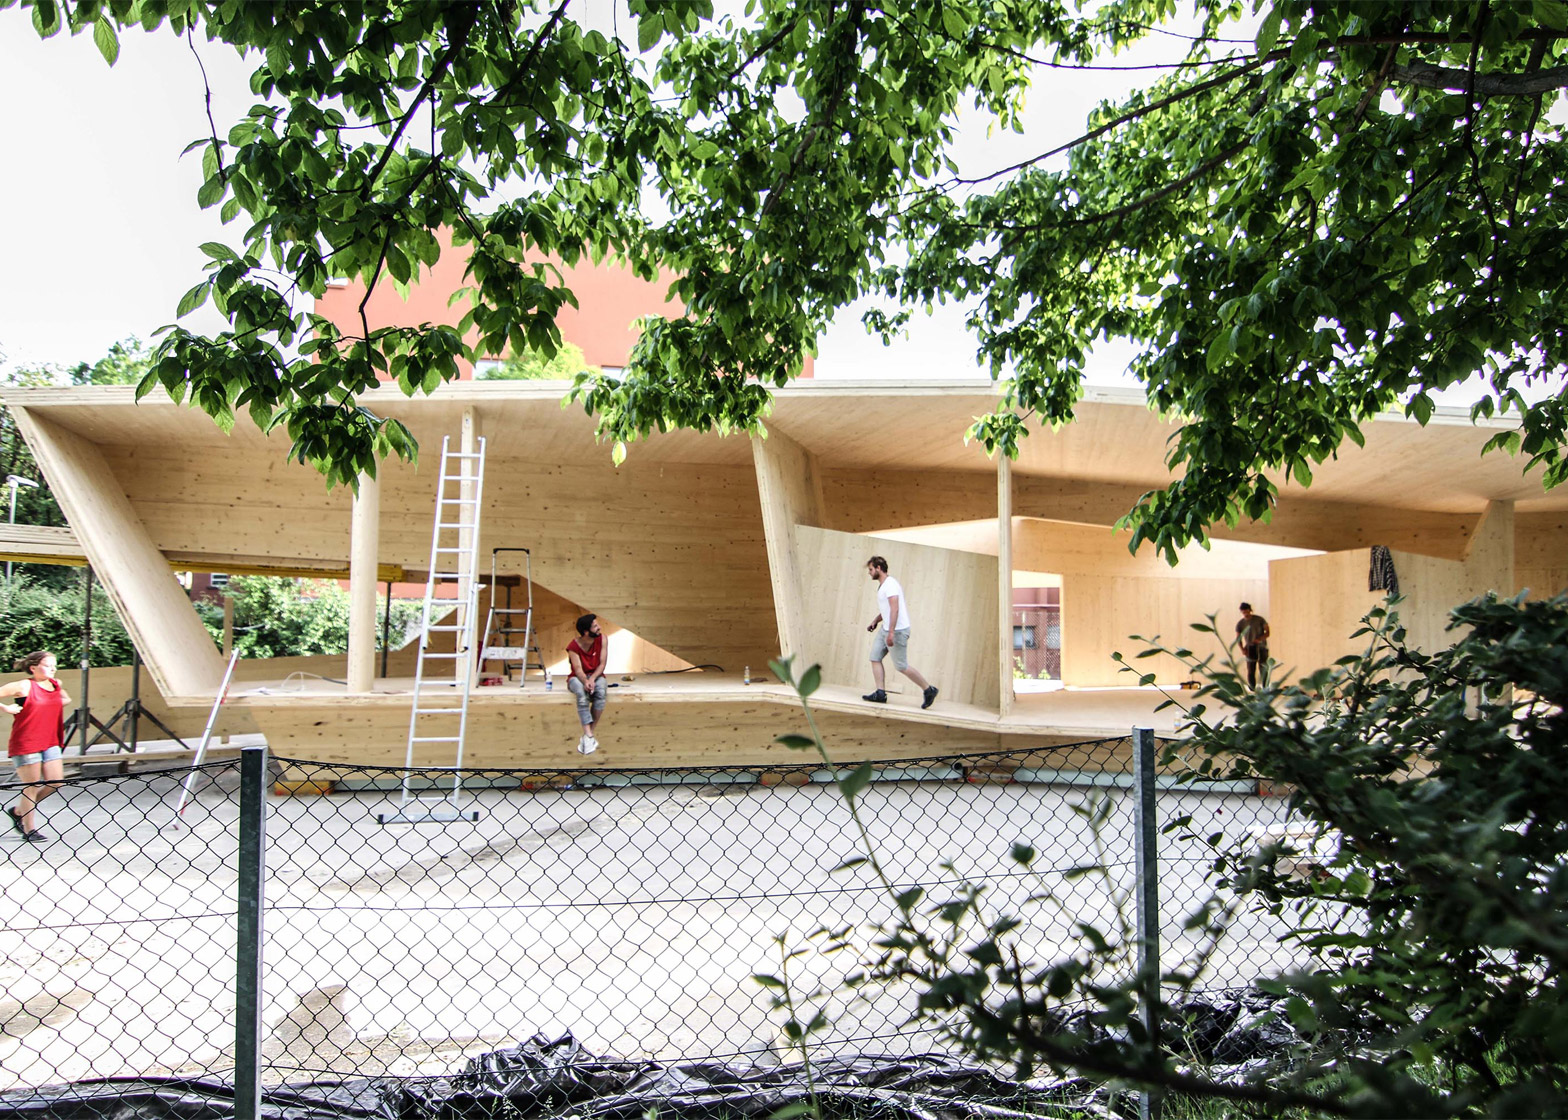 Bilding is a faceted wooden community centre built by students